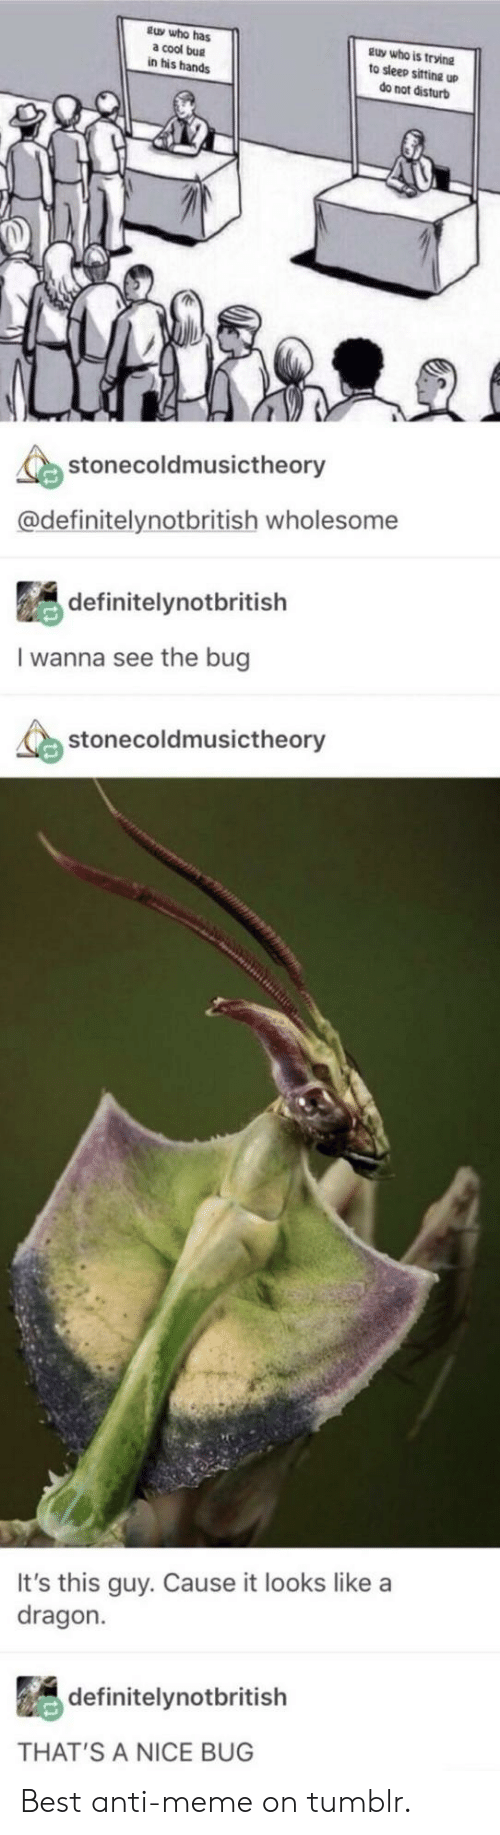 Thats A Nice: tuy who has  a cool bug  in his hands  guy who is trvine  to sleep sifting up  do not disturb  stonecoldmusictheory  @definitelynotbritish wholesome  definitelynotbritish  I wanna see the bug  stonecoldmusictheory  It's this guy. Cause it looks like a  dragon.  definitelynotbritish  THAT'S A NICE BUG Best anti-meme on tumblr.